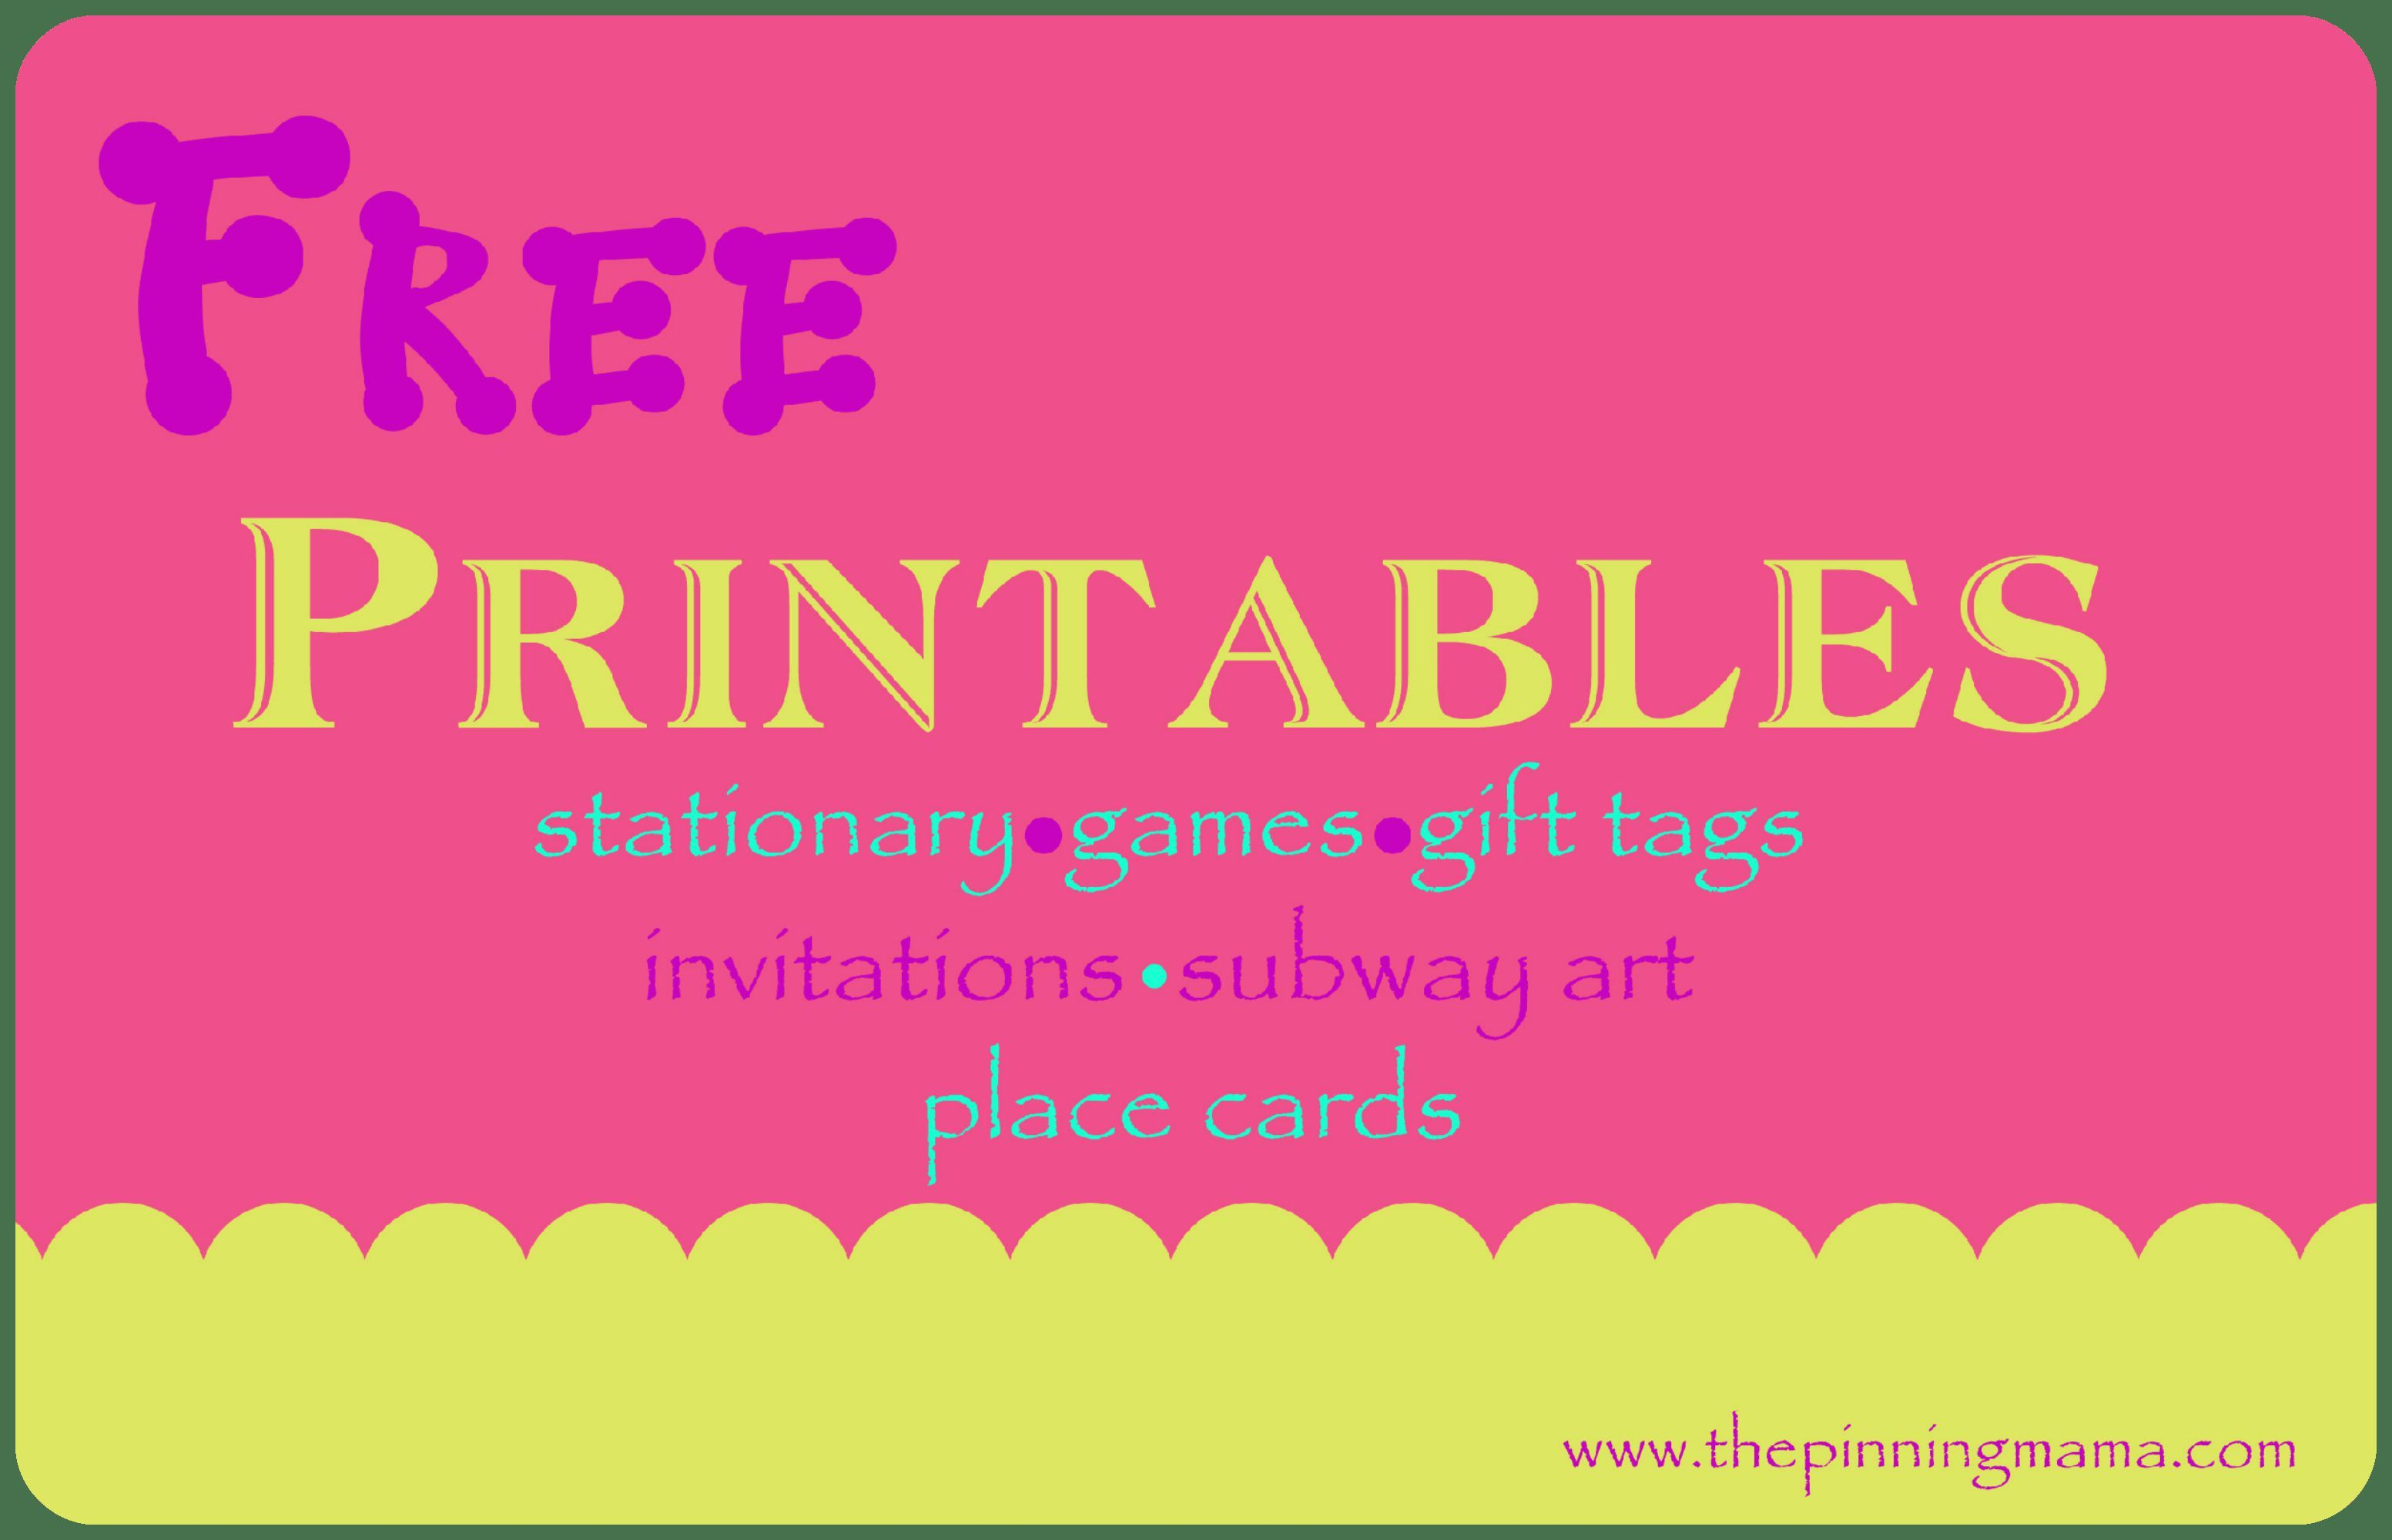 Free Printable Birthday Party Invitations Planning A Birthday Party Can